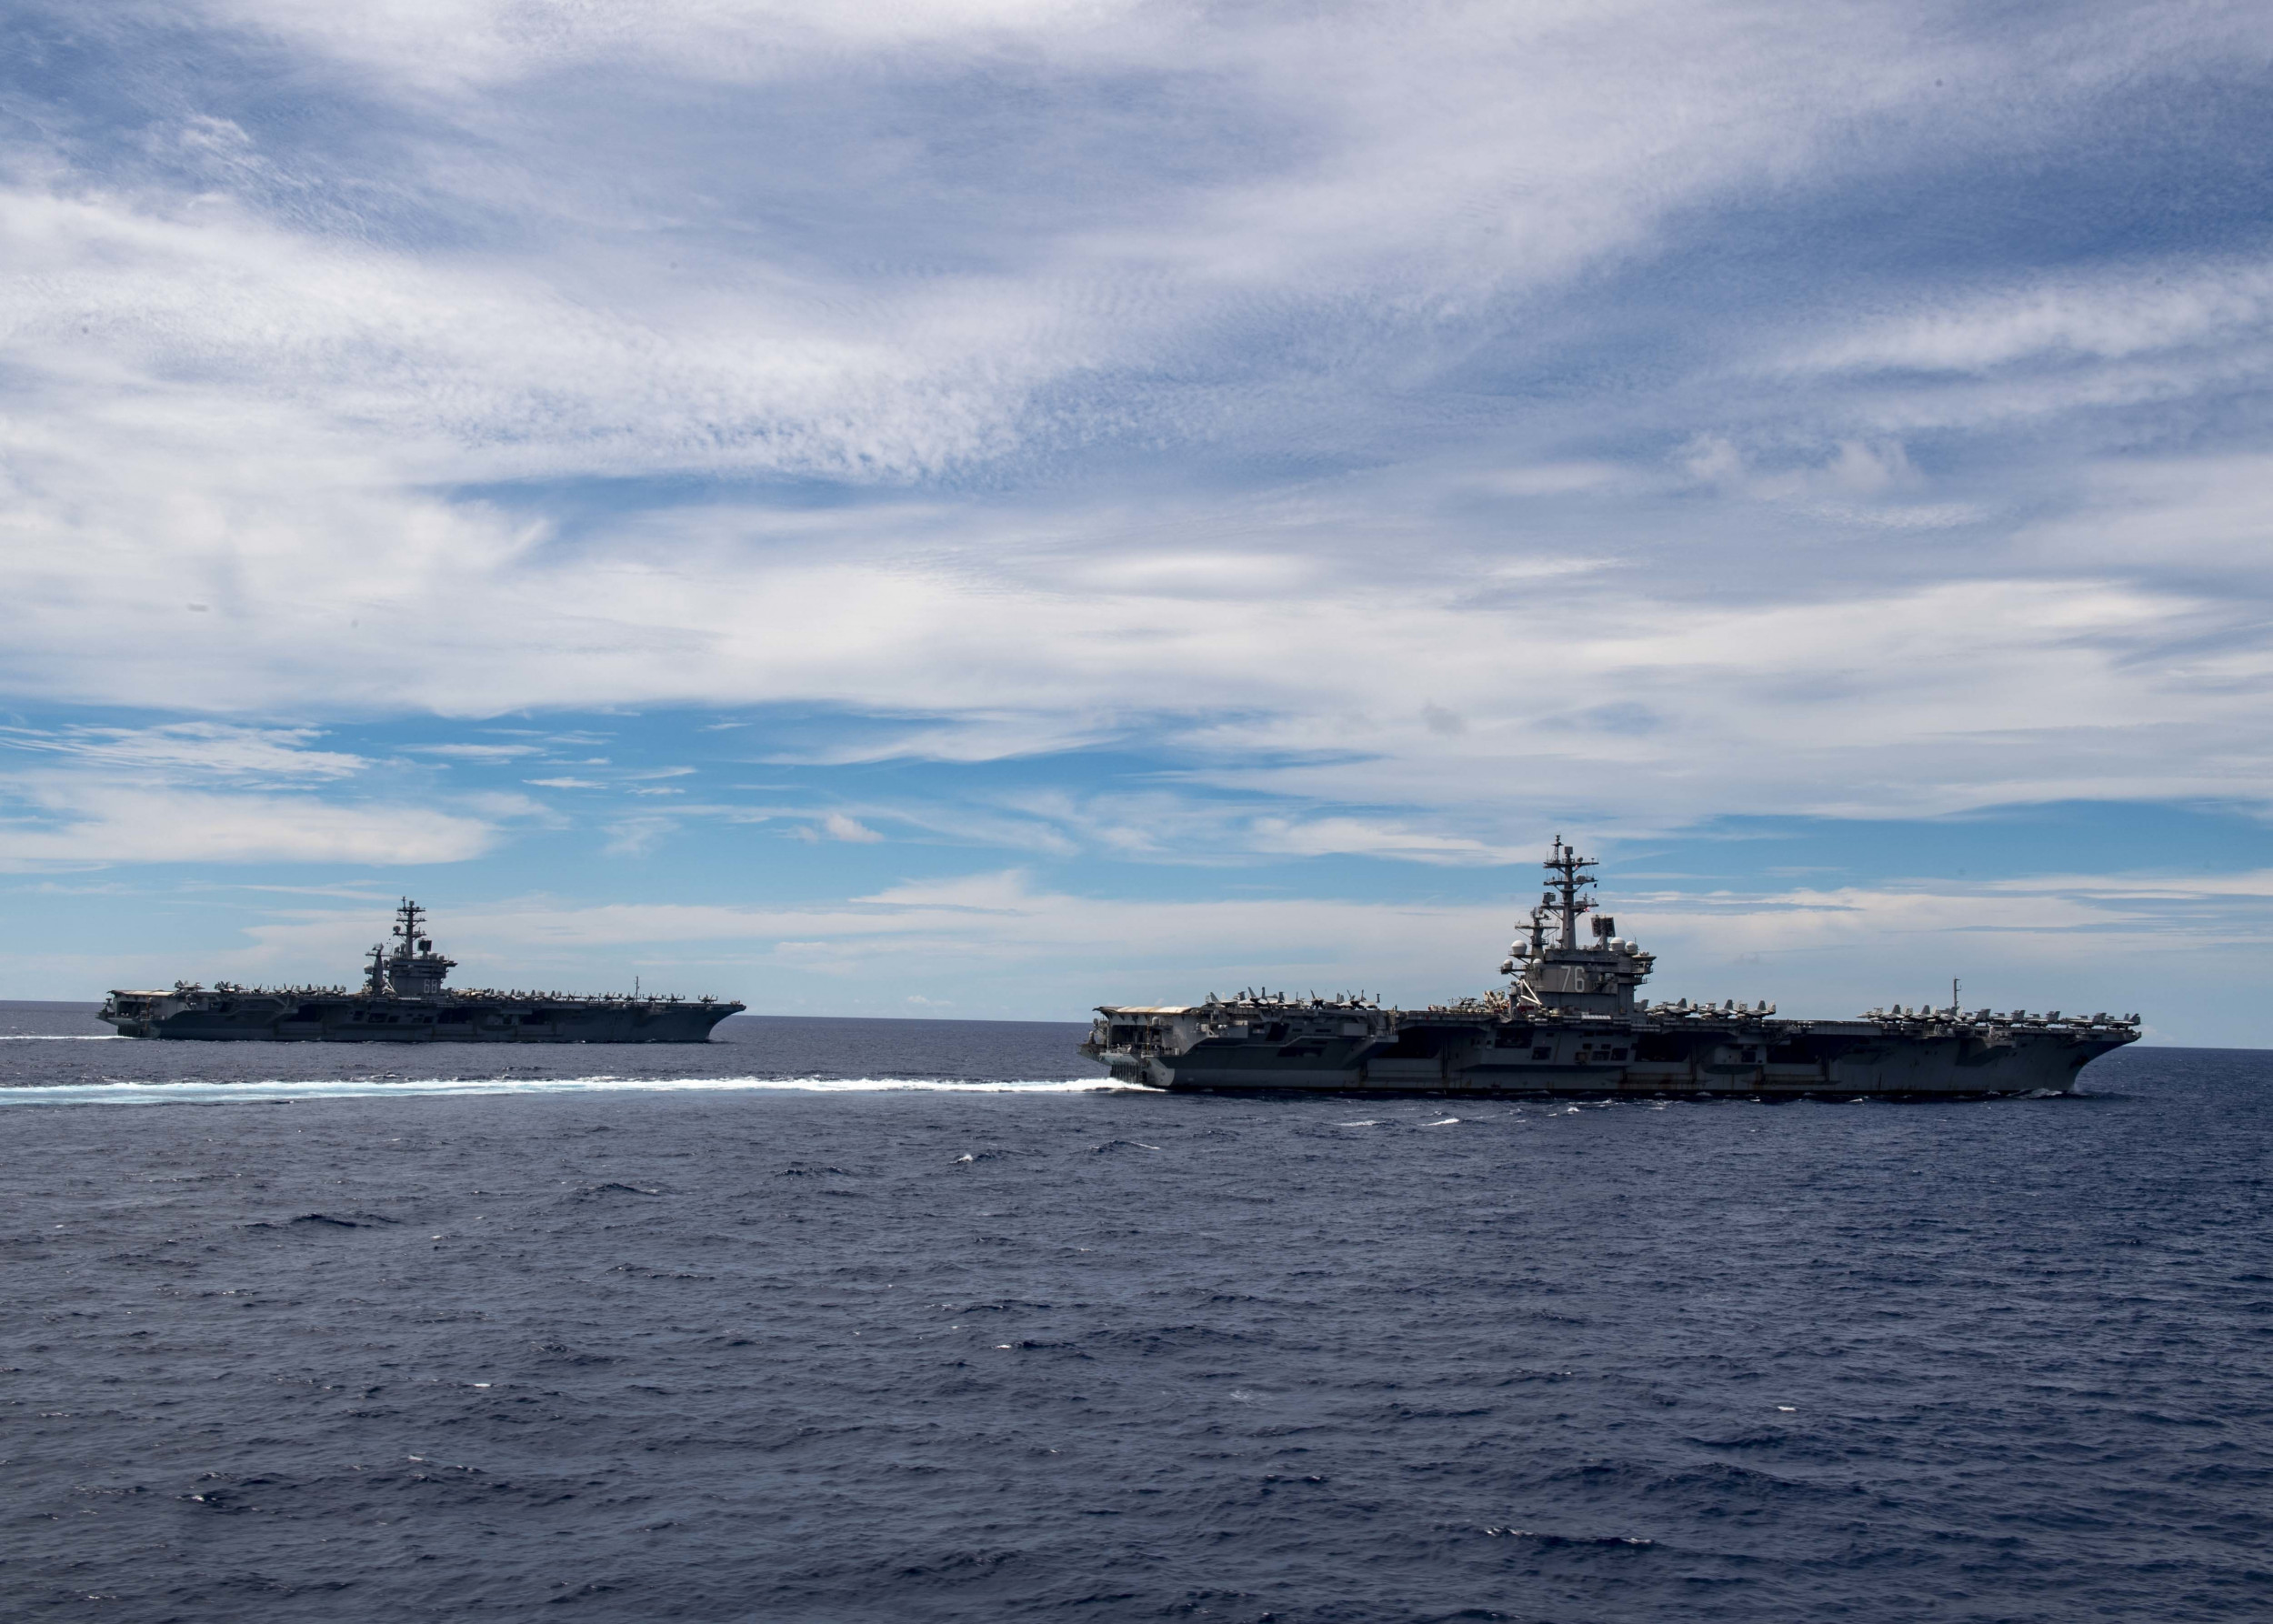 China blames U.S. for revolutions, illegal wars amid South China Sea spat